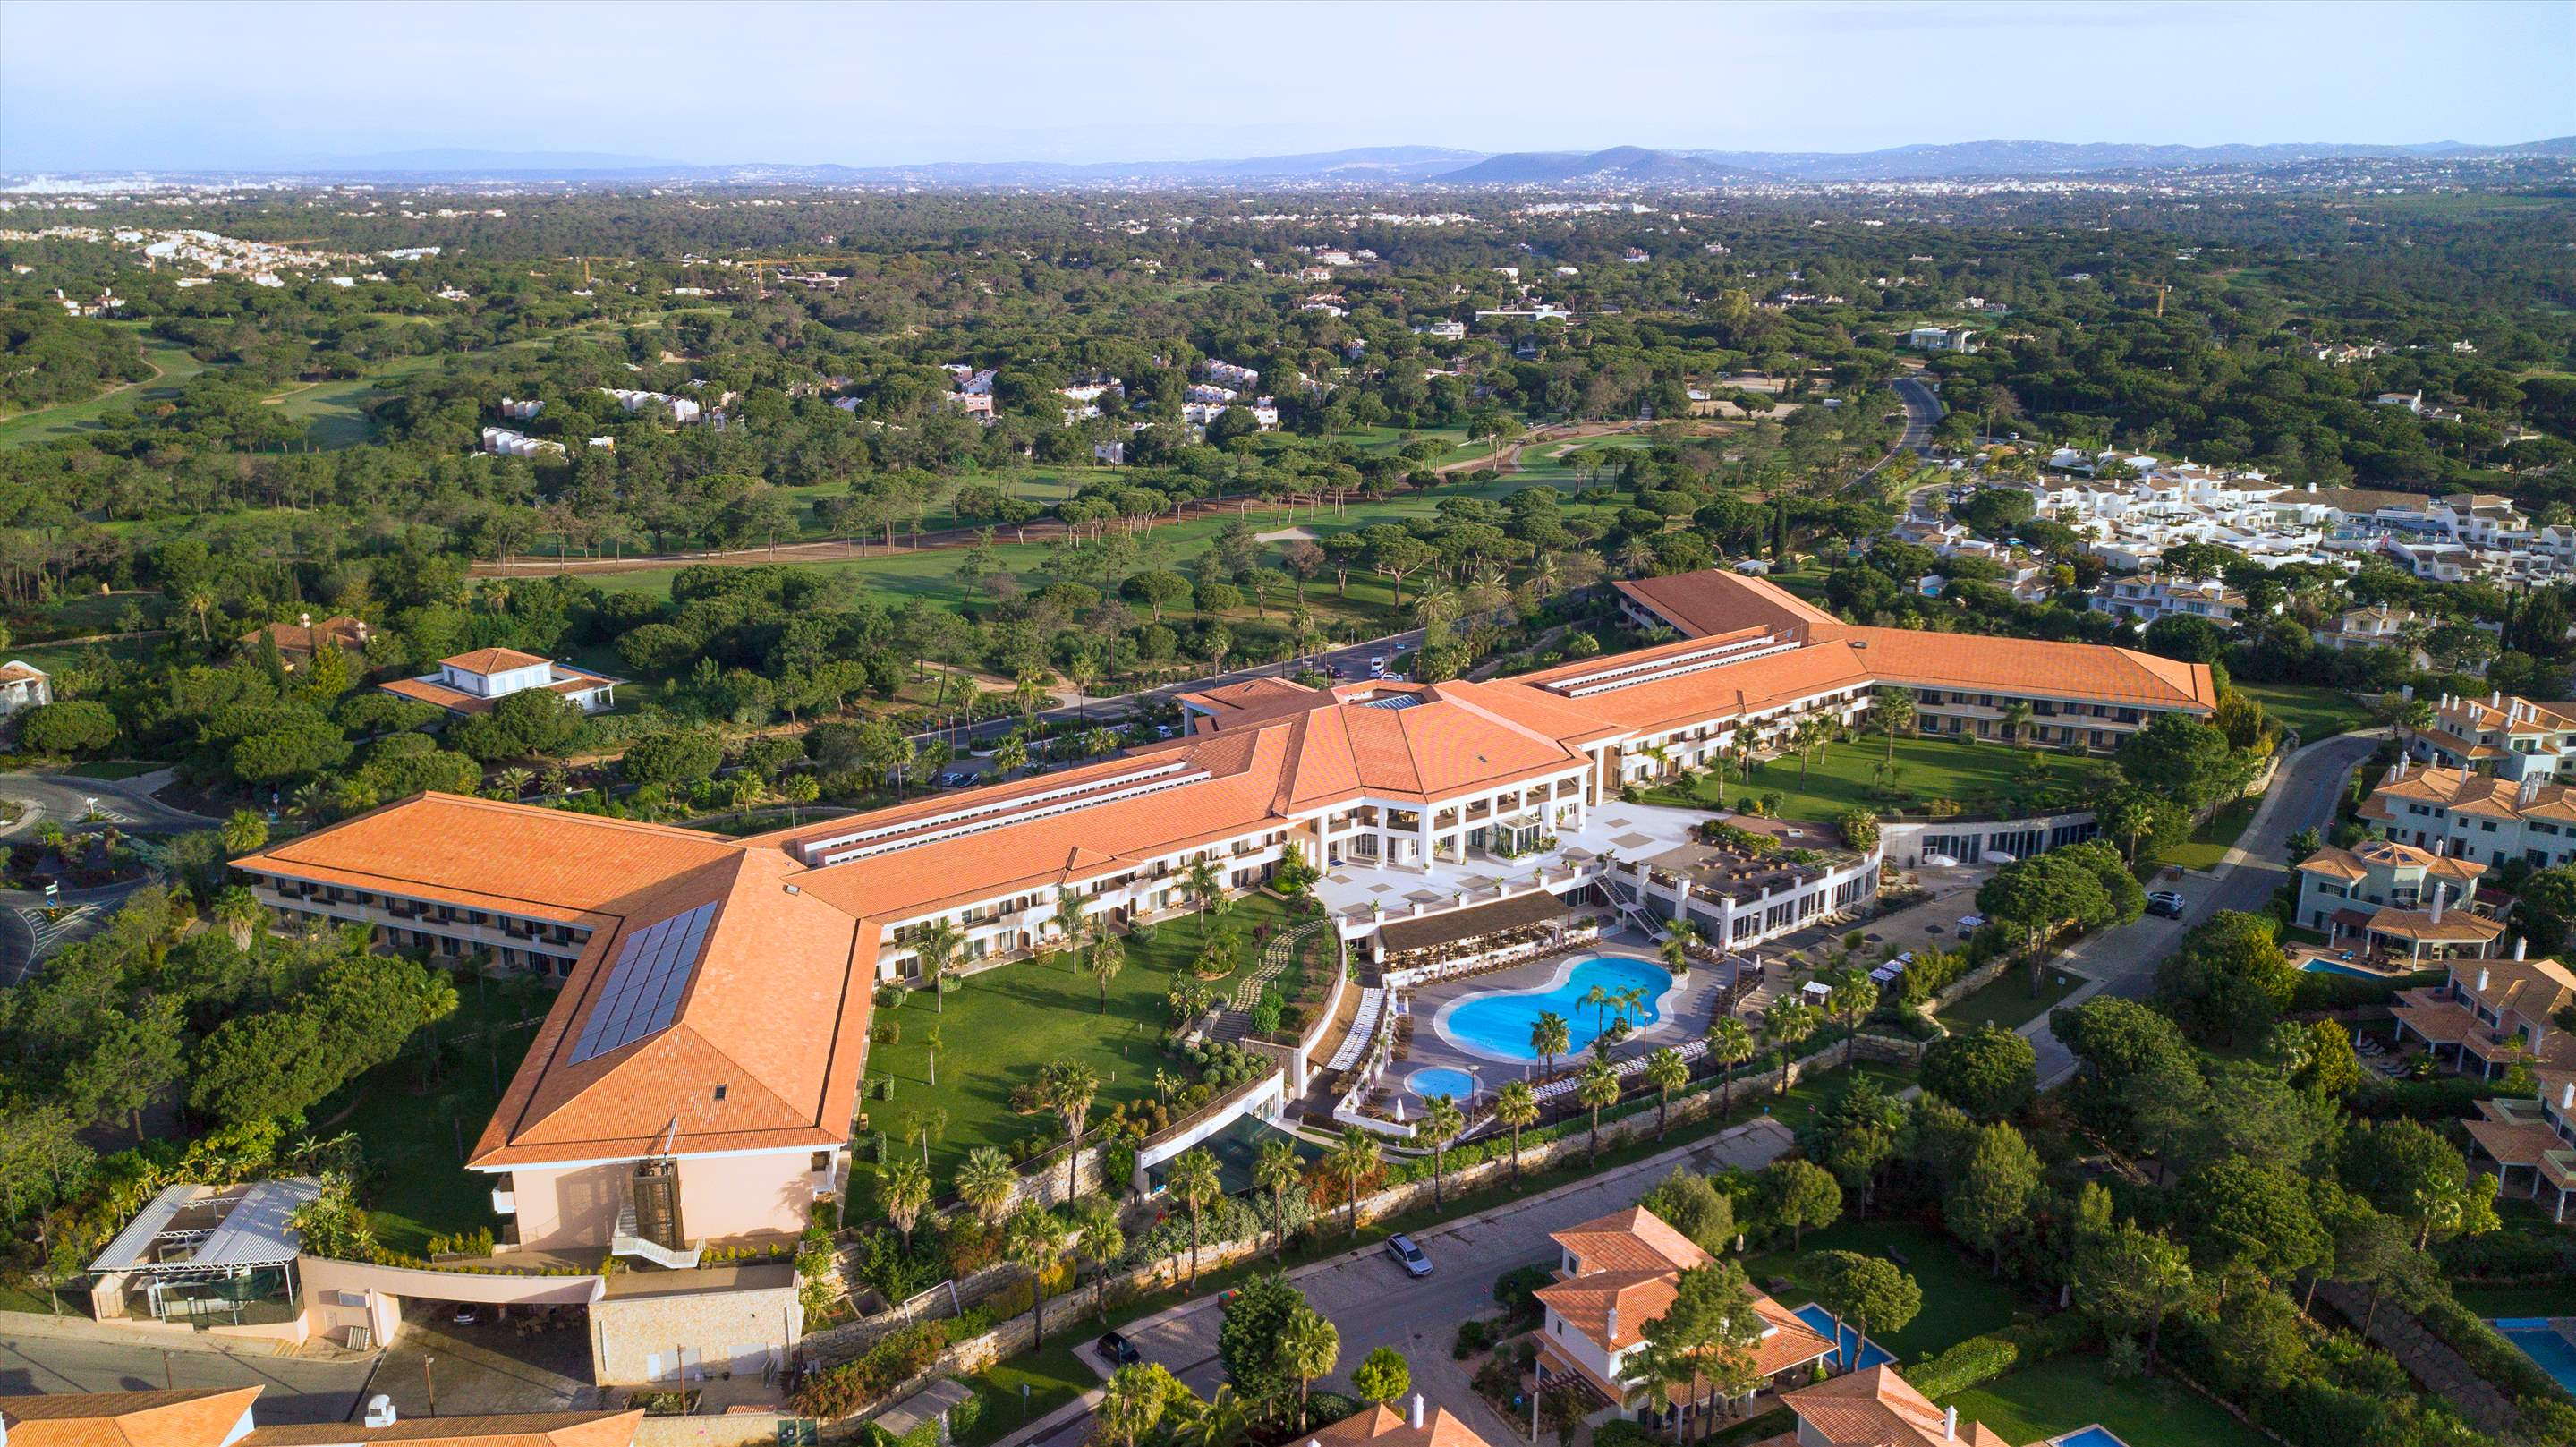 Wyndham Grand Algarve 1 Bedroom, Deluxe Suite, Pool Side ,Room Only , 1 bedroom apartment in Wyndham Grand Algarve, Algarve Photo #30